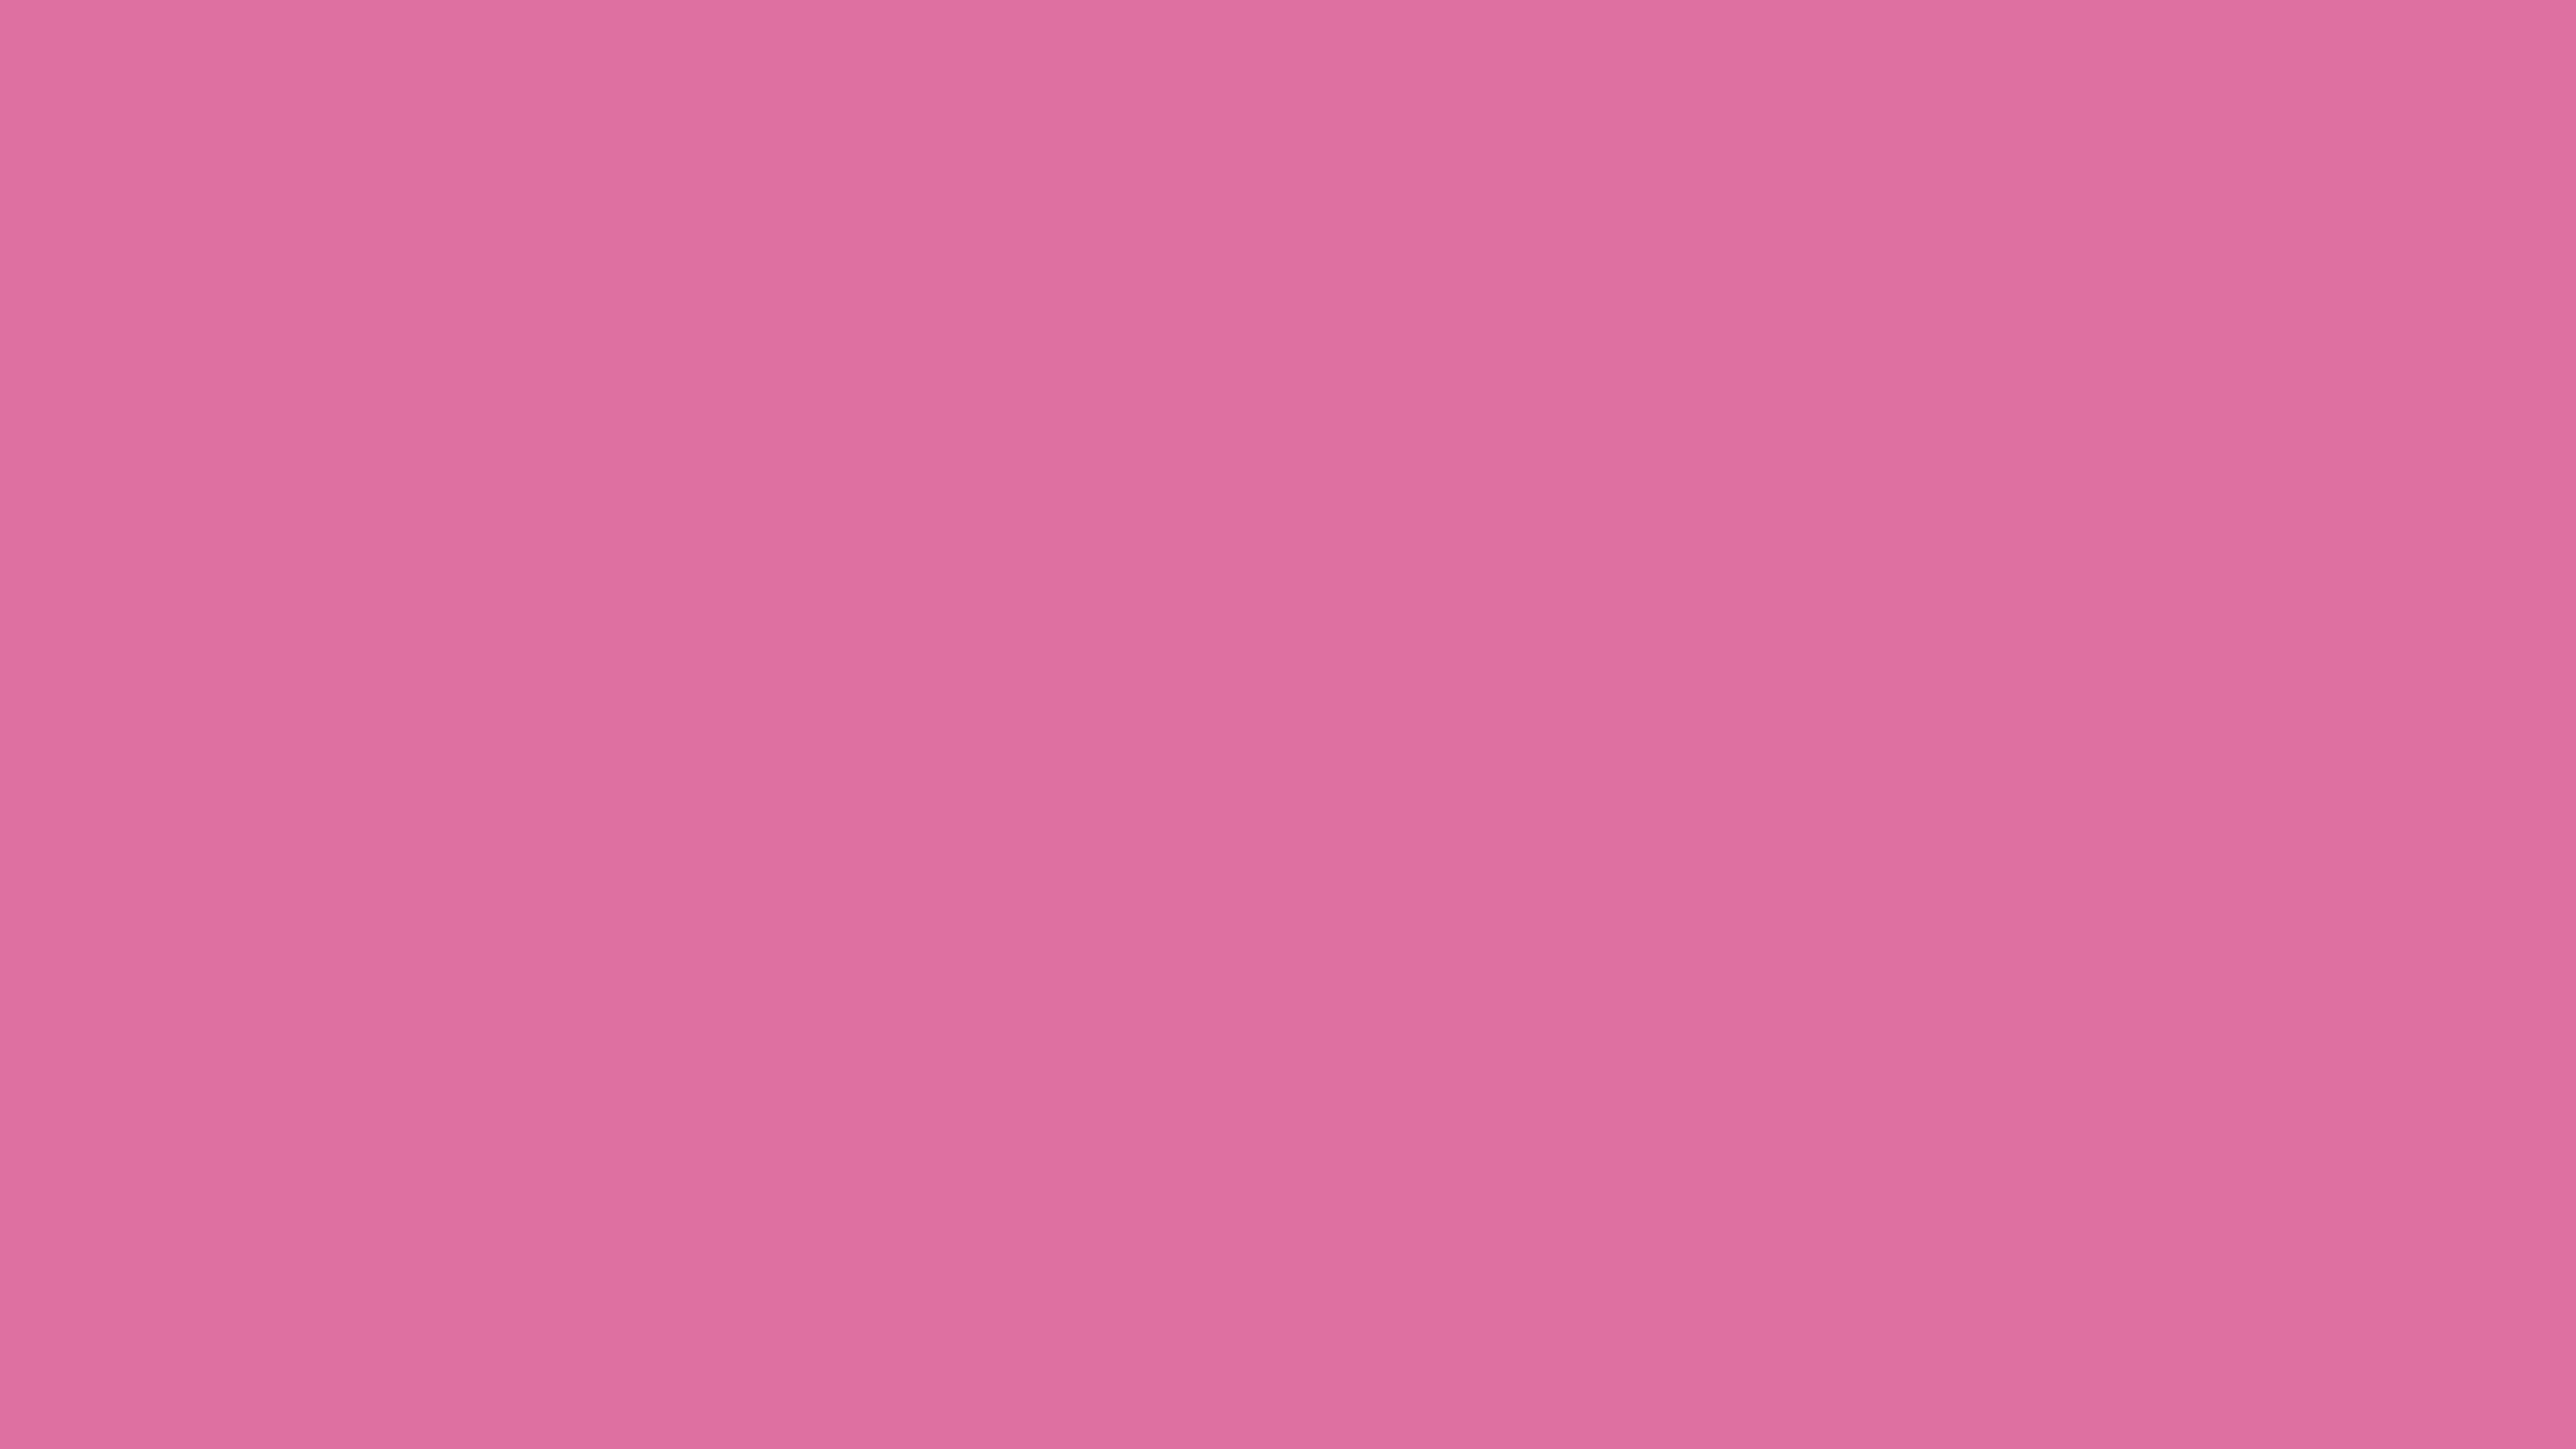 3840x2160 Thulian Pink Solid Color Background